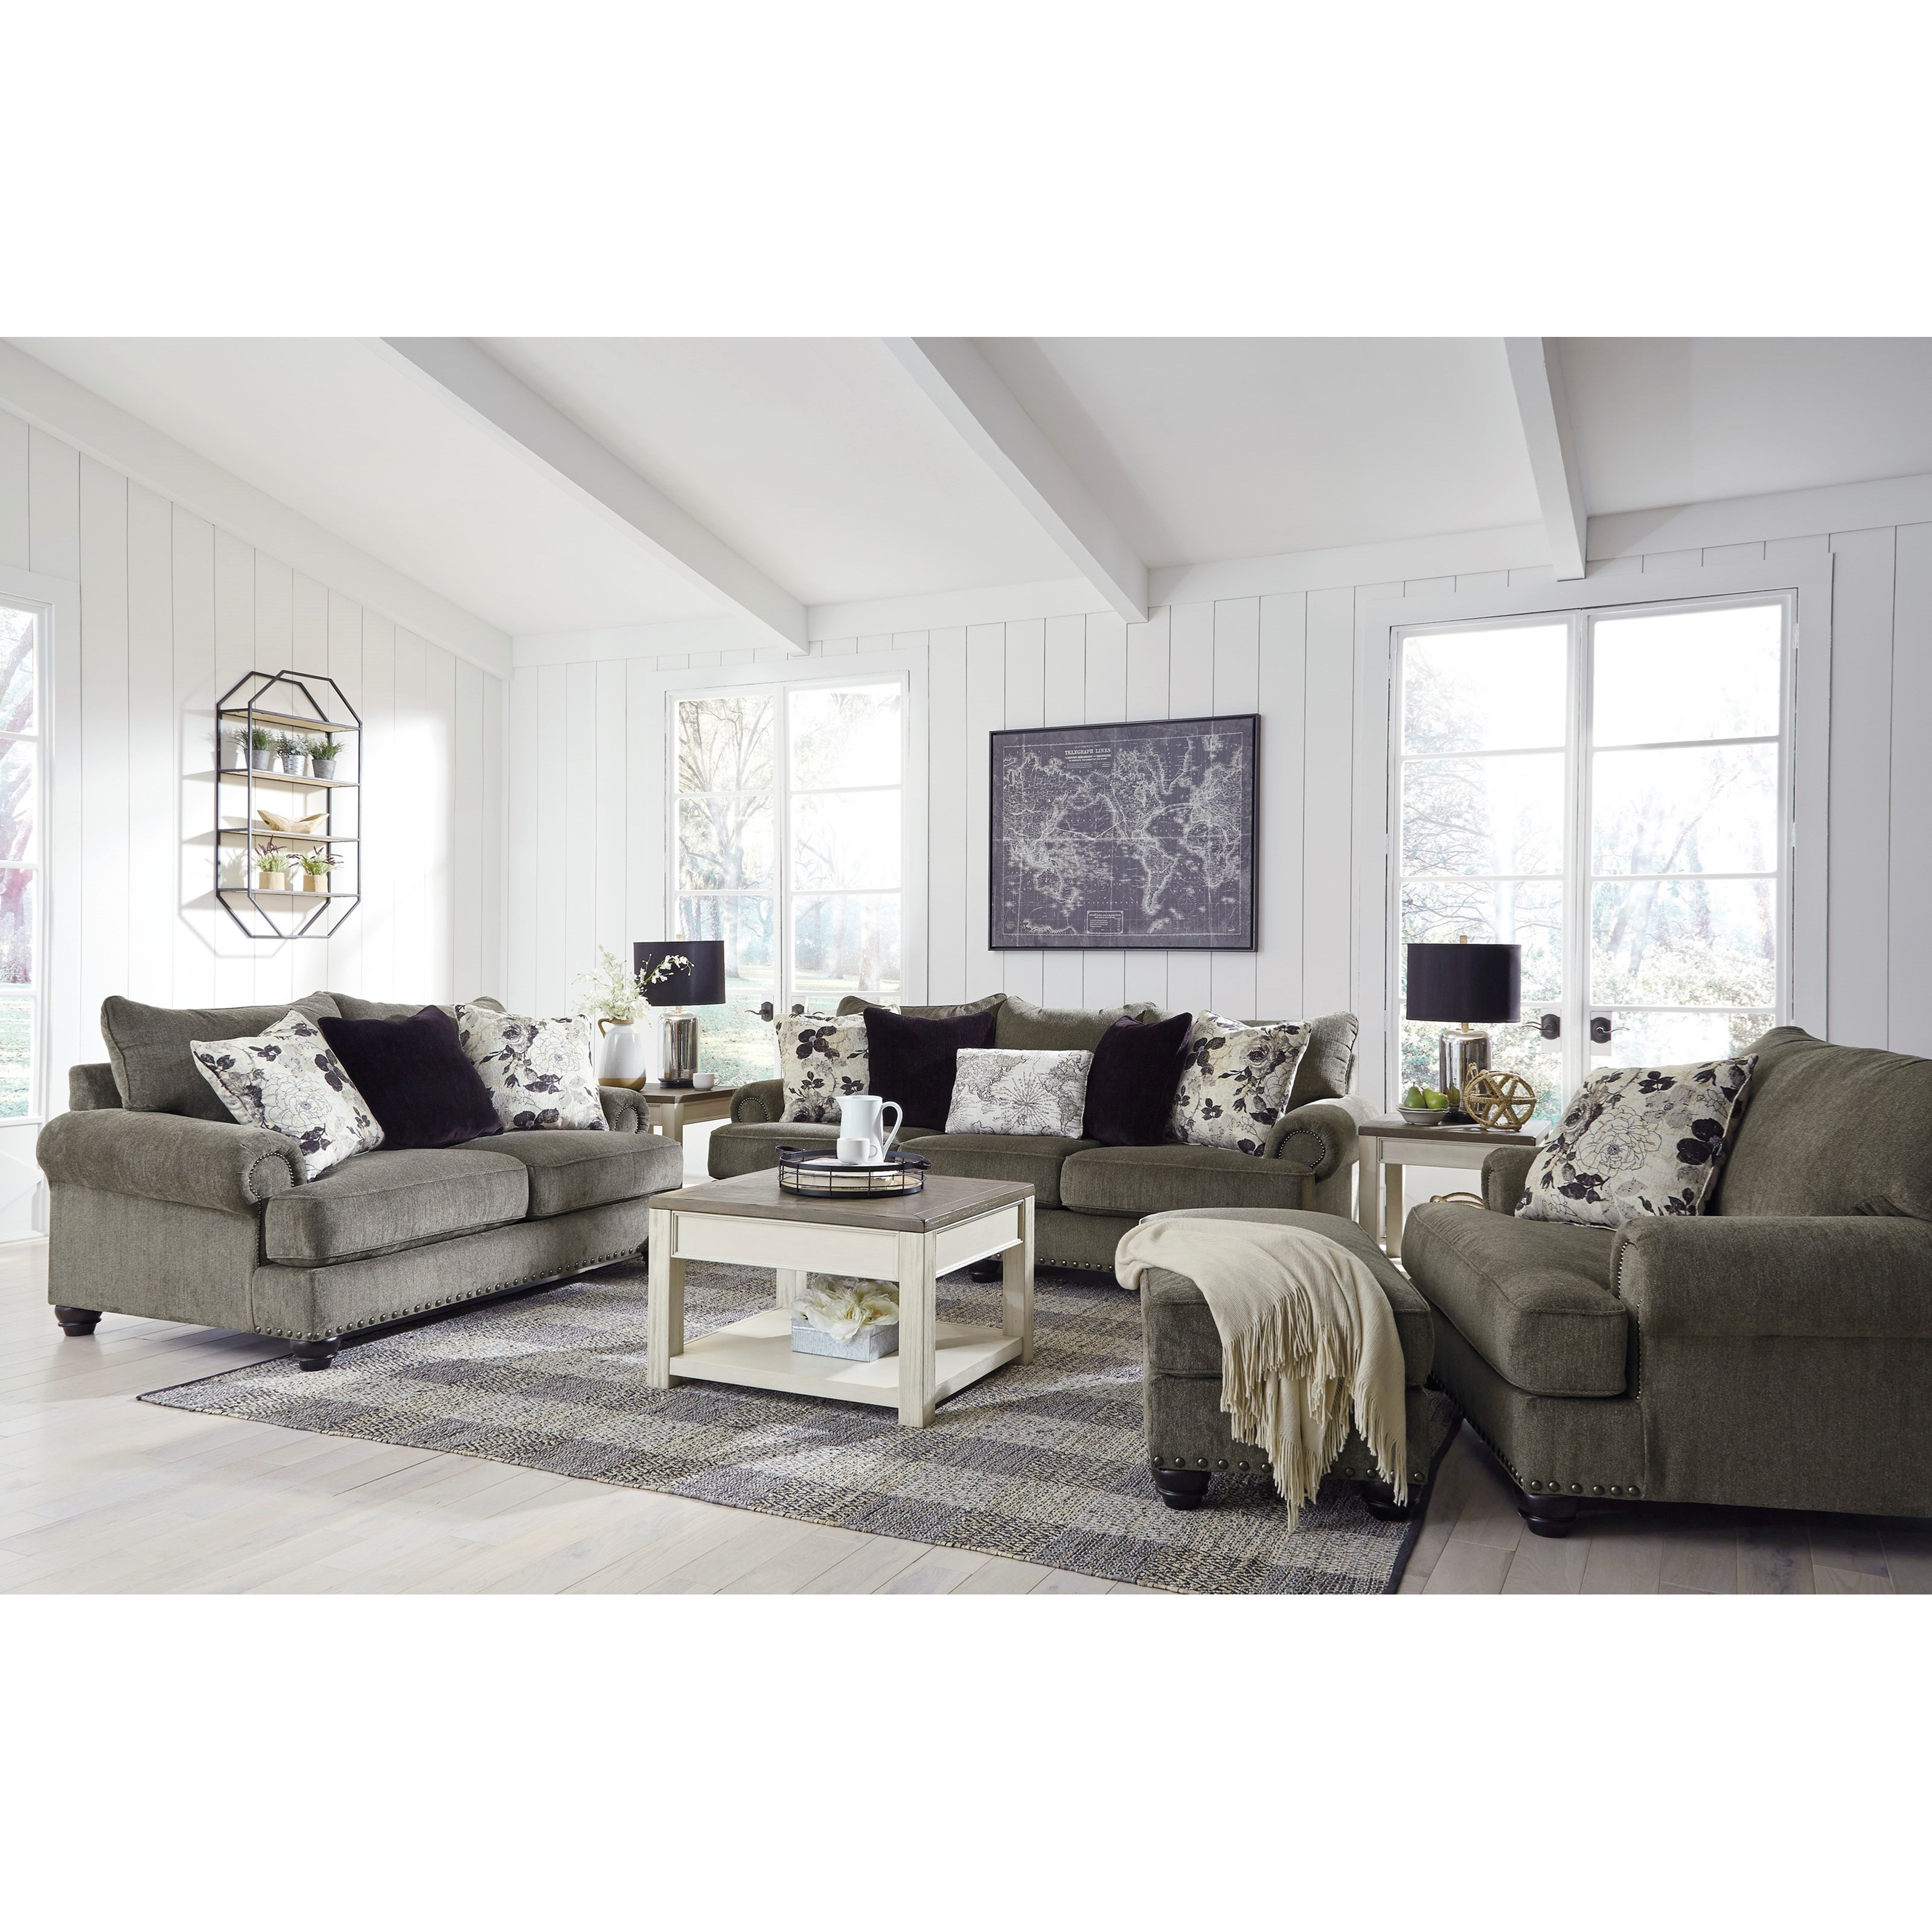 Sembler Living Room Group by Benchcraft at Household Furniture